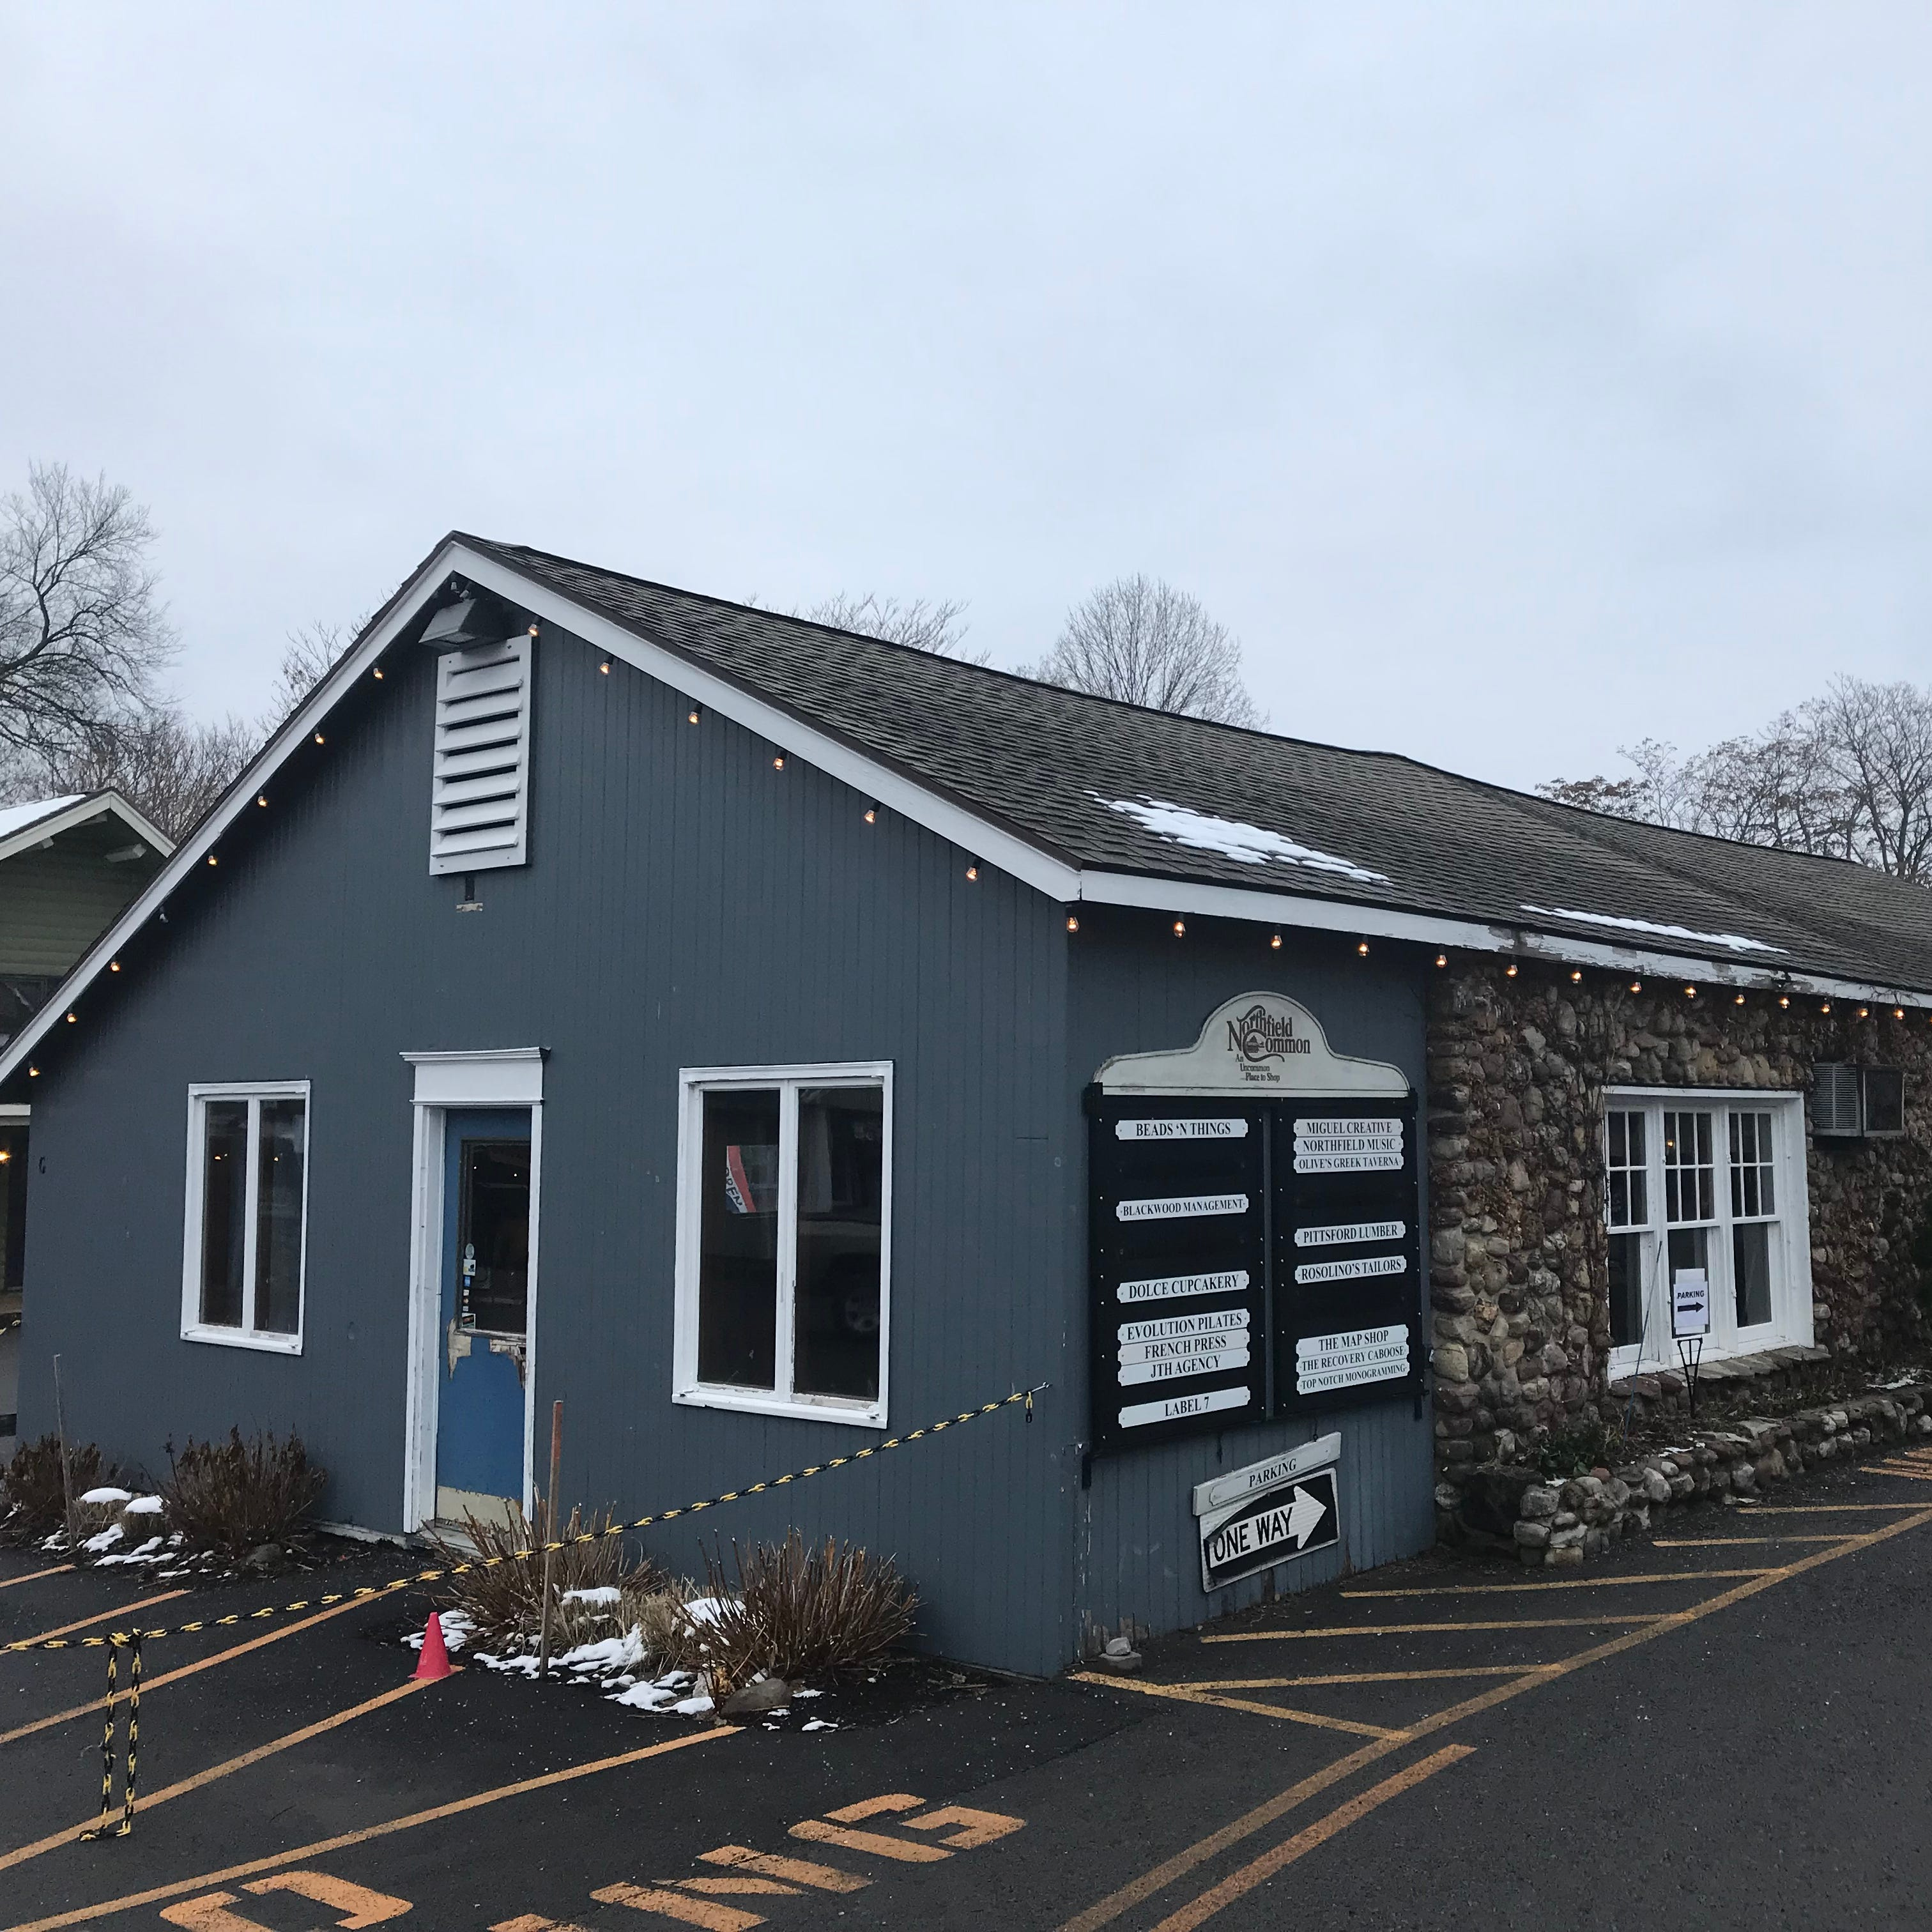 Is Pittsford trying to stop a brewery from opening?